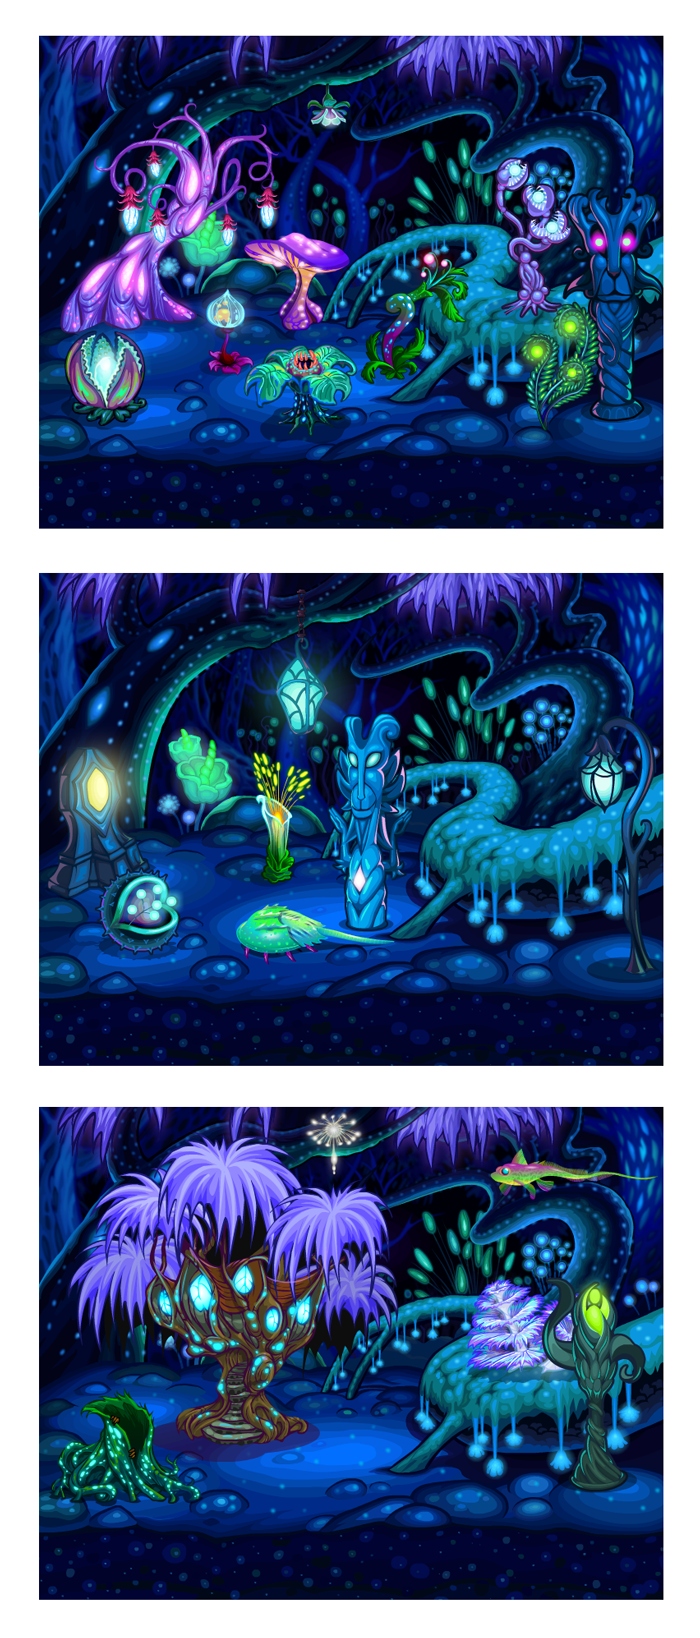 Illuminated Forest theme for Zynga's Fishville